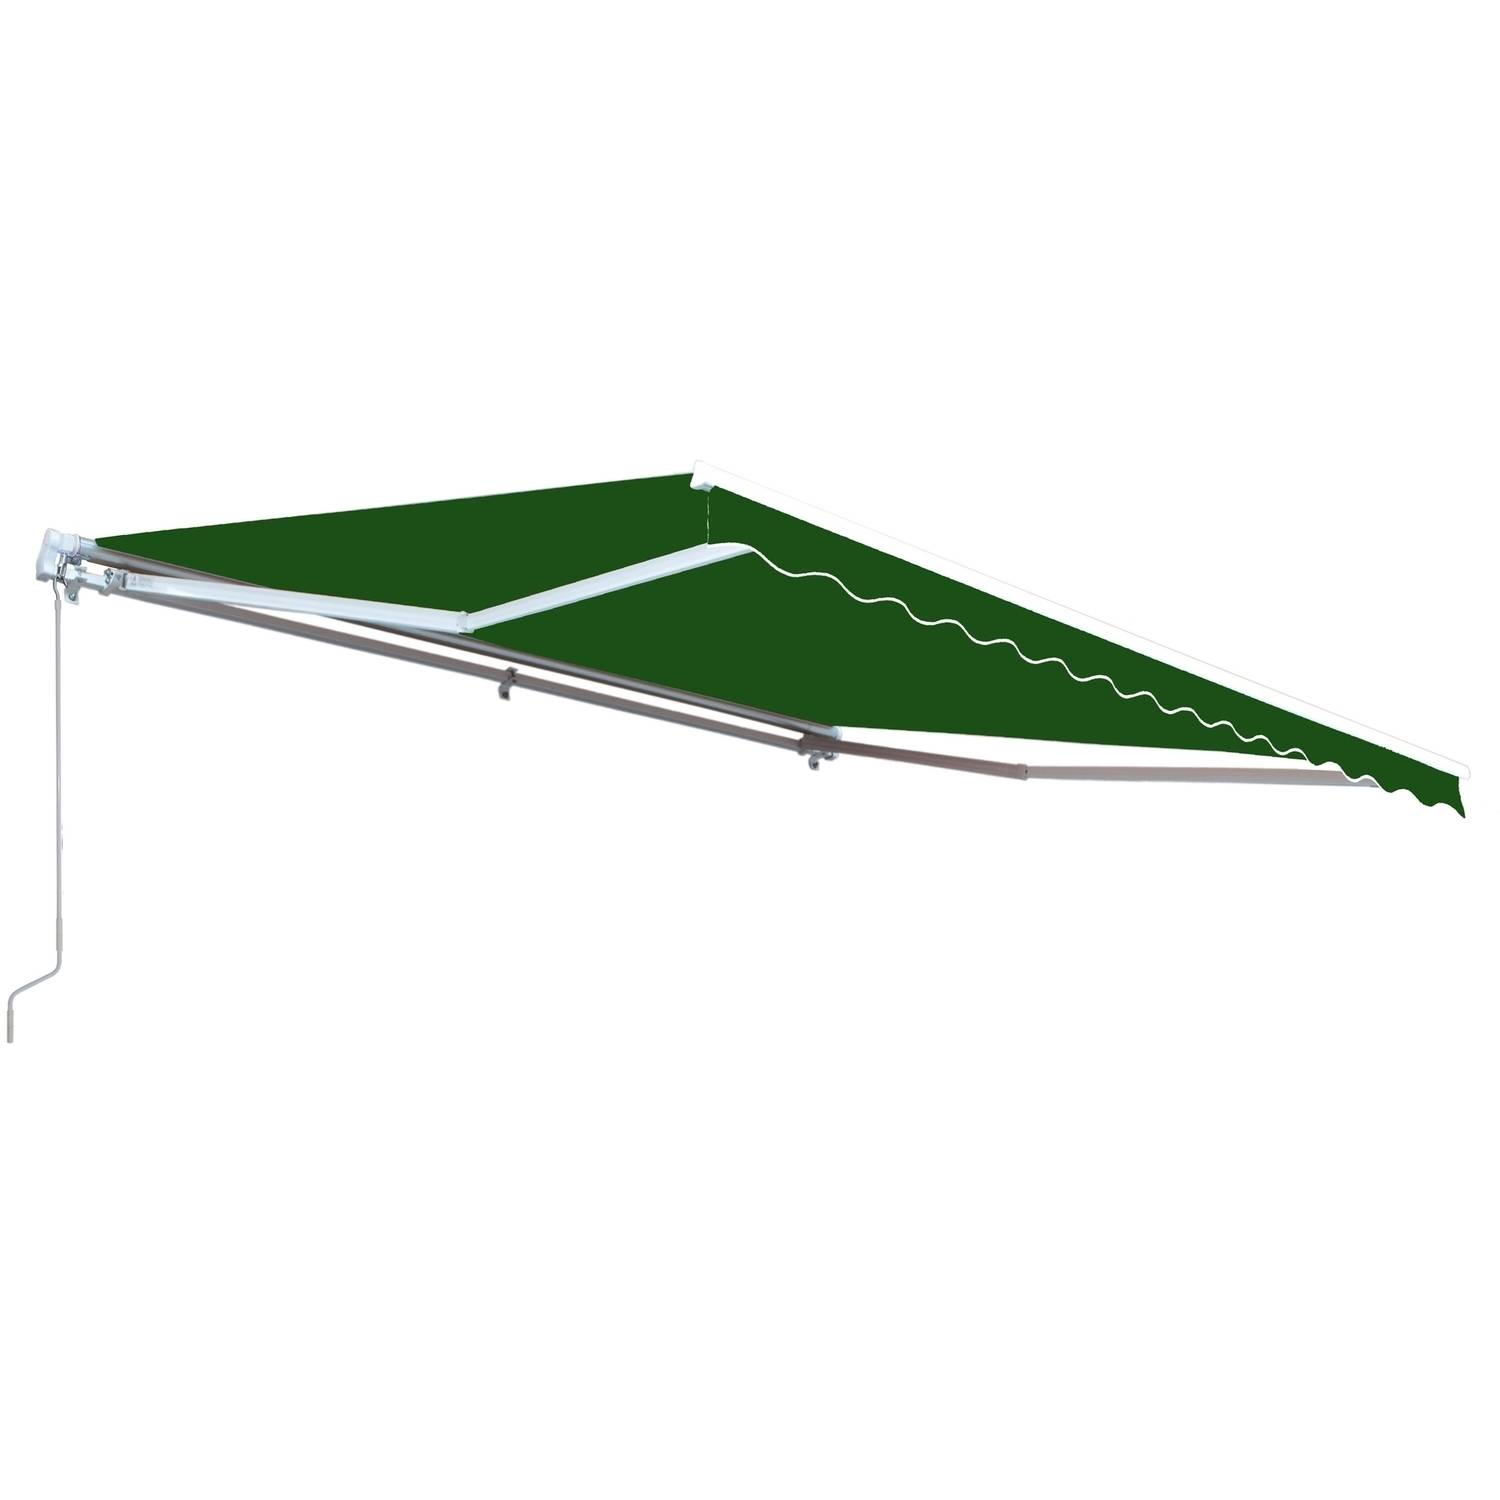 ALEKO Retractable Patio Awning, 13' x 10' (4m x 3m), Solid Green